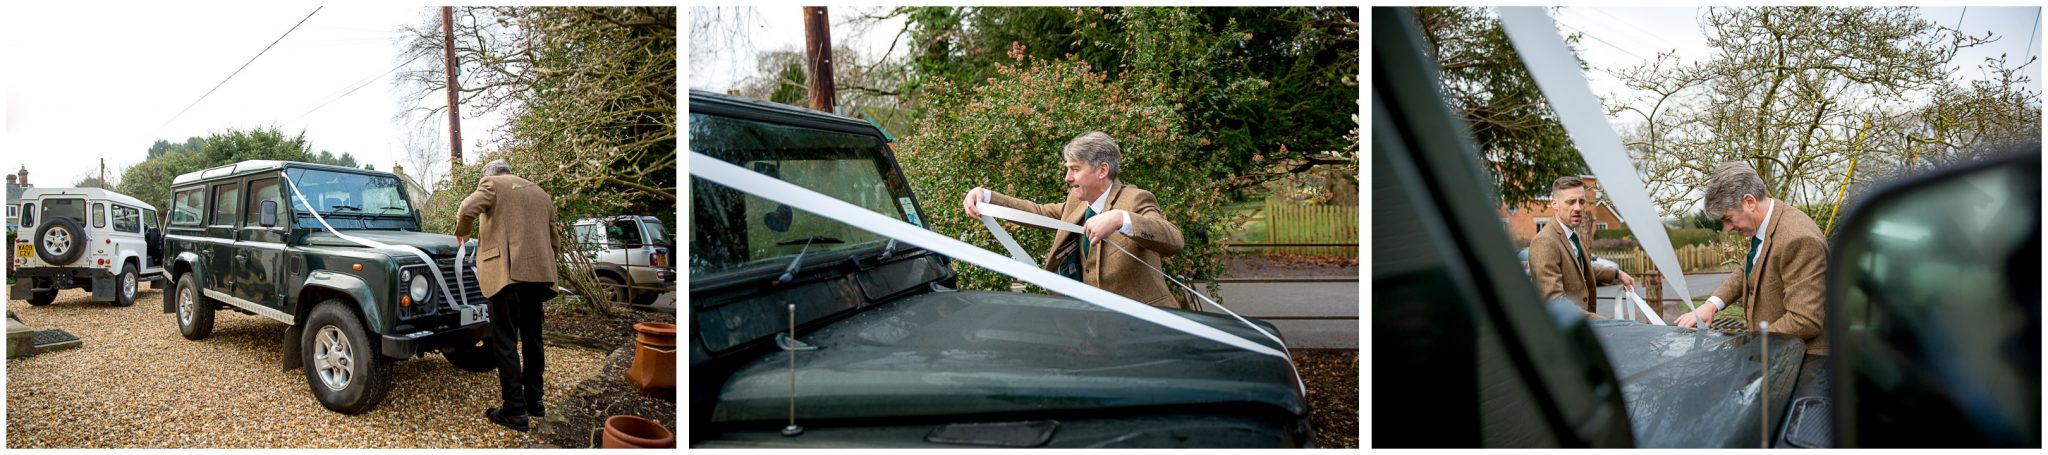 Preparing the wedding cards; classic Landrovers